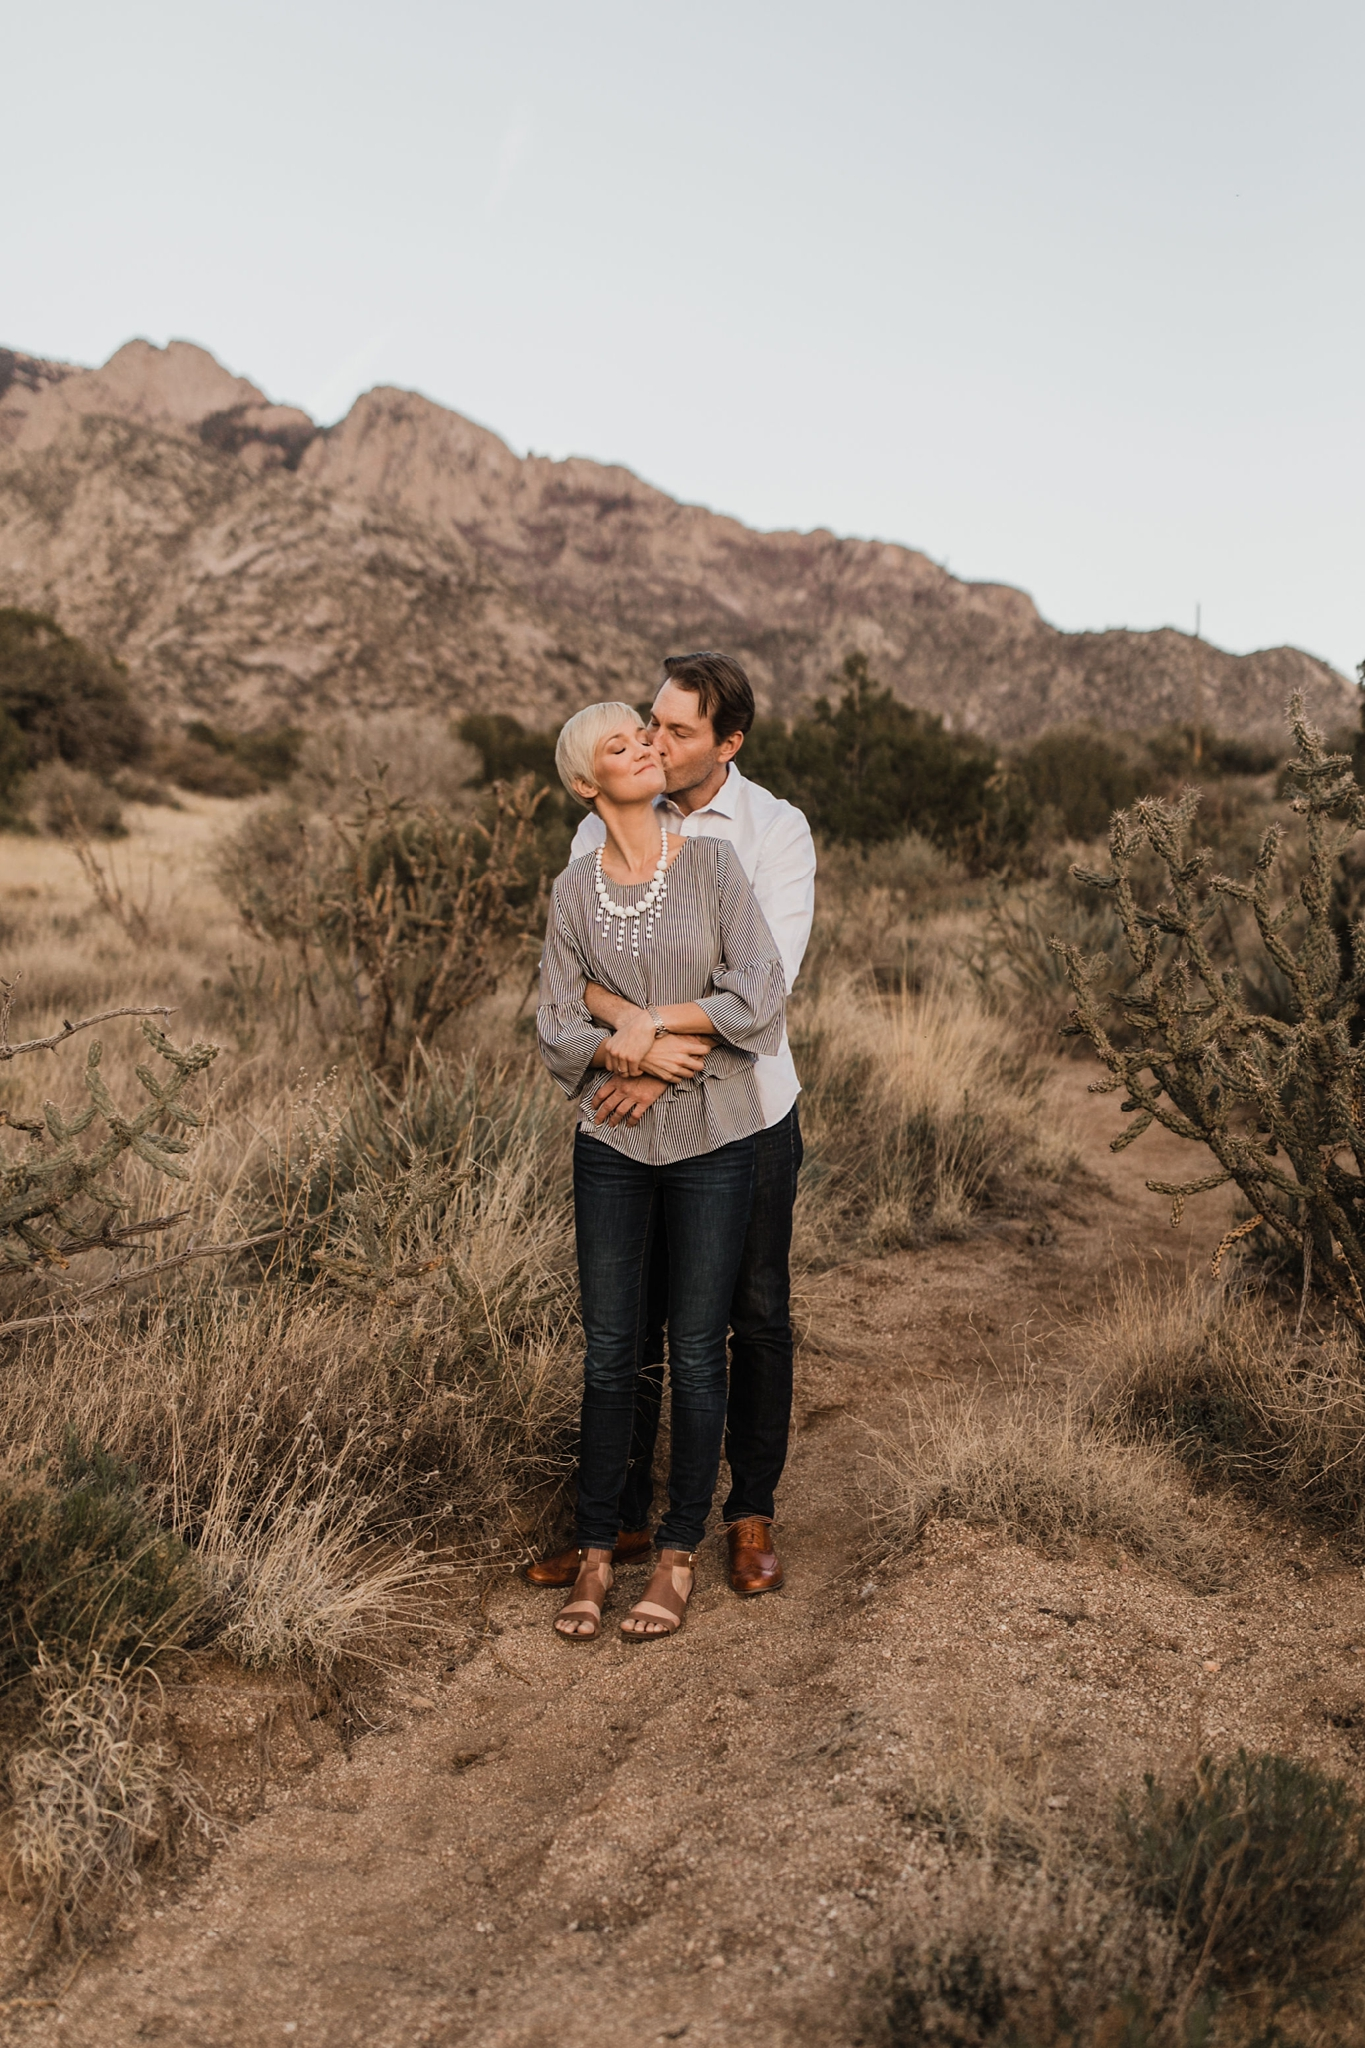 Alicia+lucia+photography+-+albuquerque+wedding+photographer+-+santa+fe+wedding+photography+-+new+mexico+wedding+photographer+-+new+mexico+wedding+-+engagement+-+new+mexico+engagement+-+desert+engagement+-+albuquerque+engagement_0015.jpg